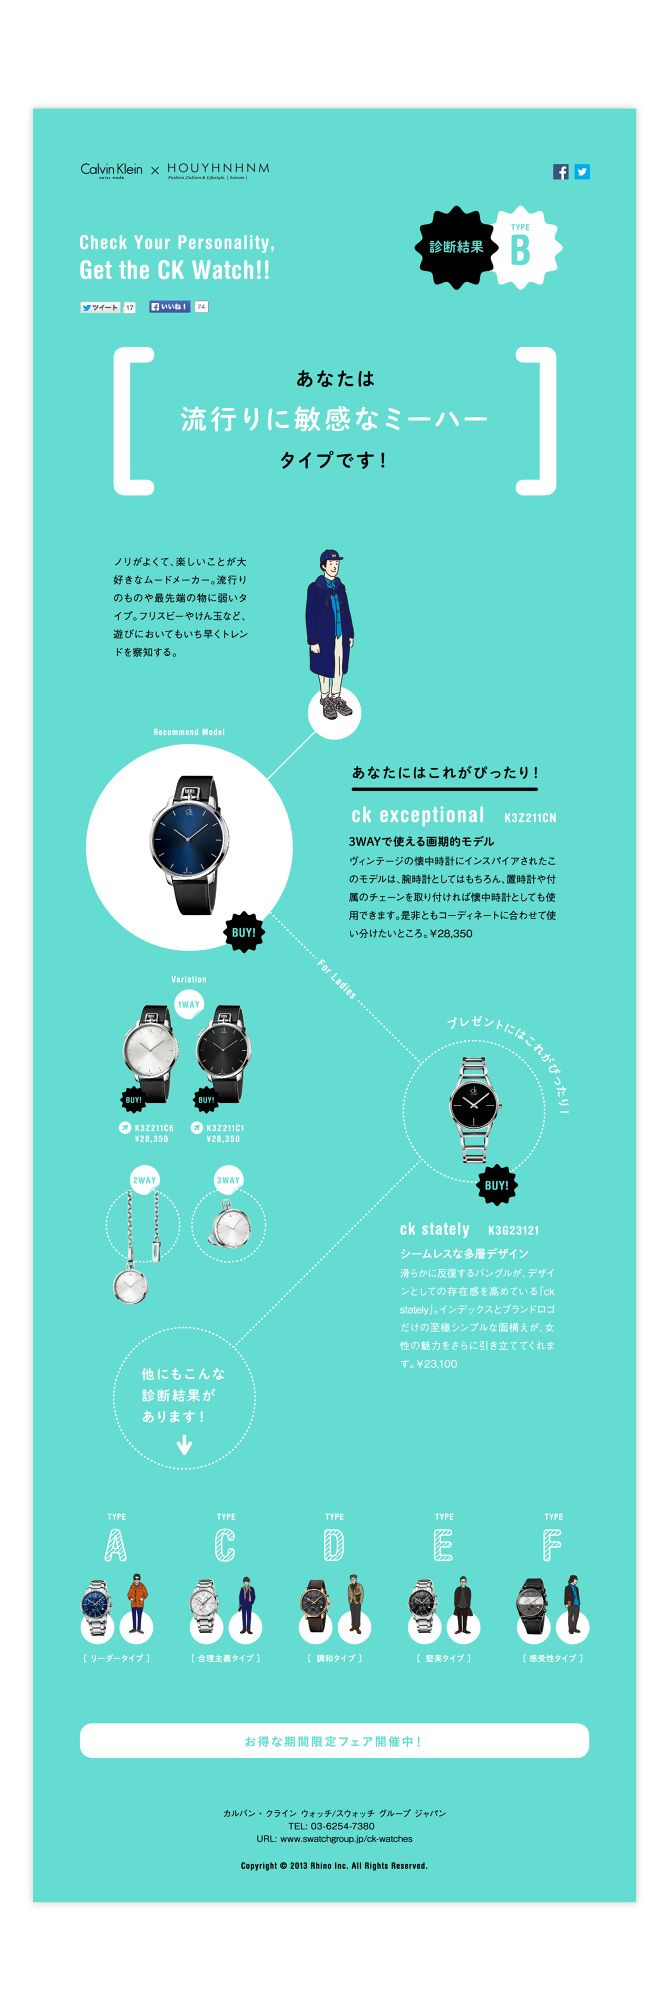 Check Your Personality, Get the CK Watch!! - siun